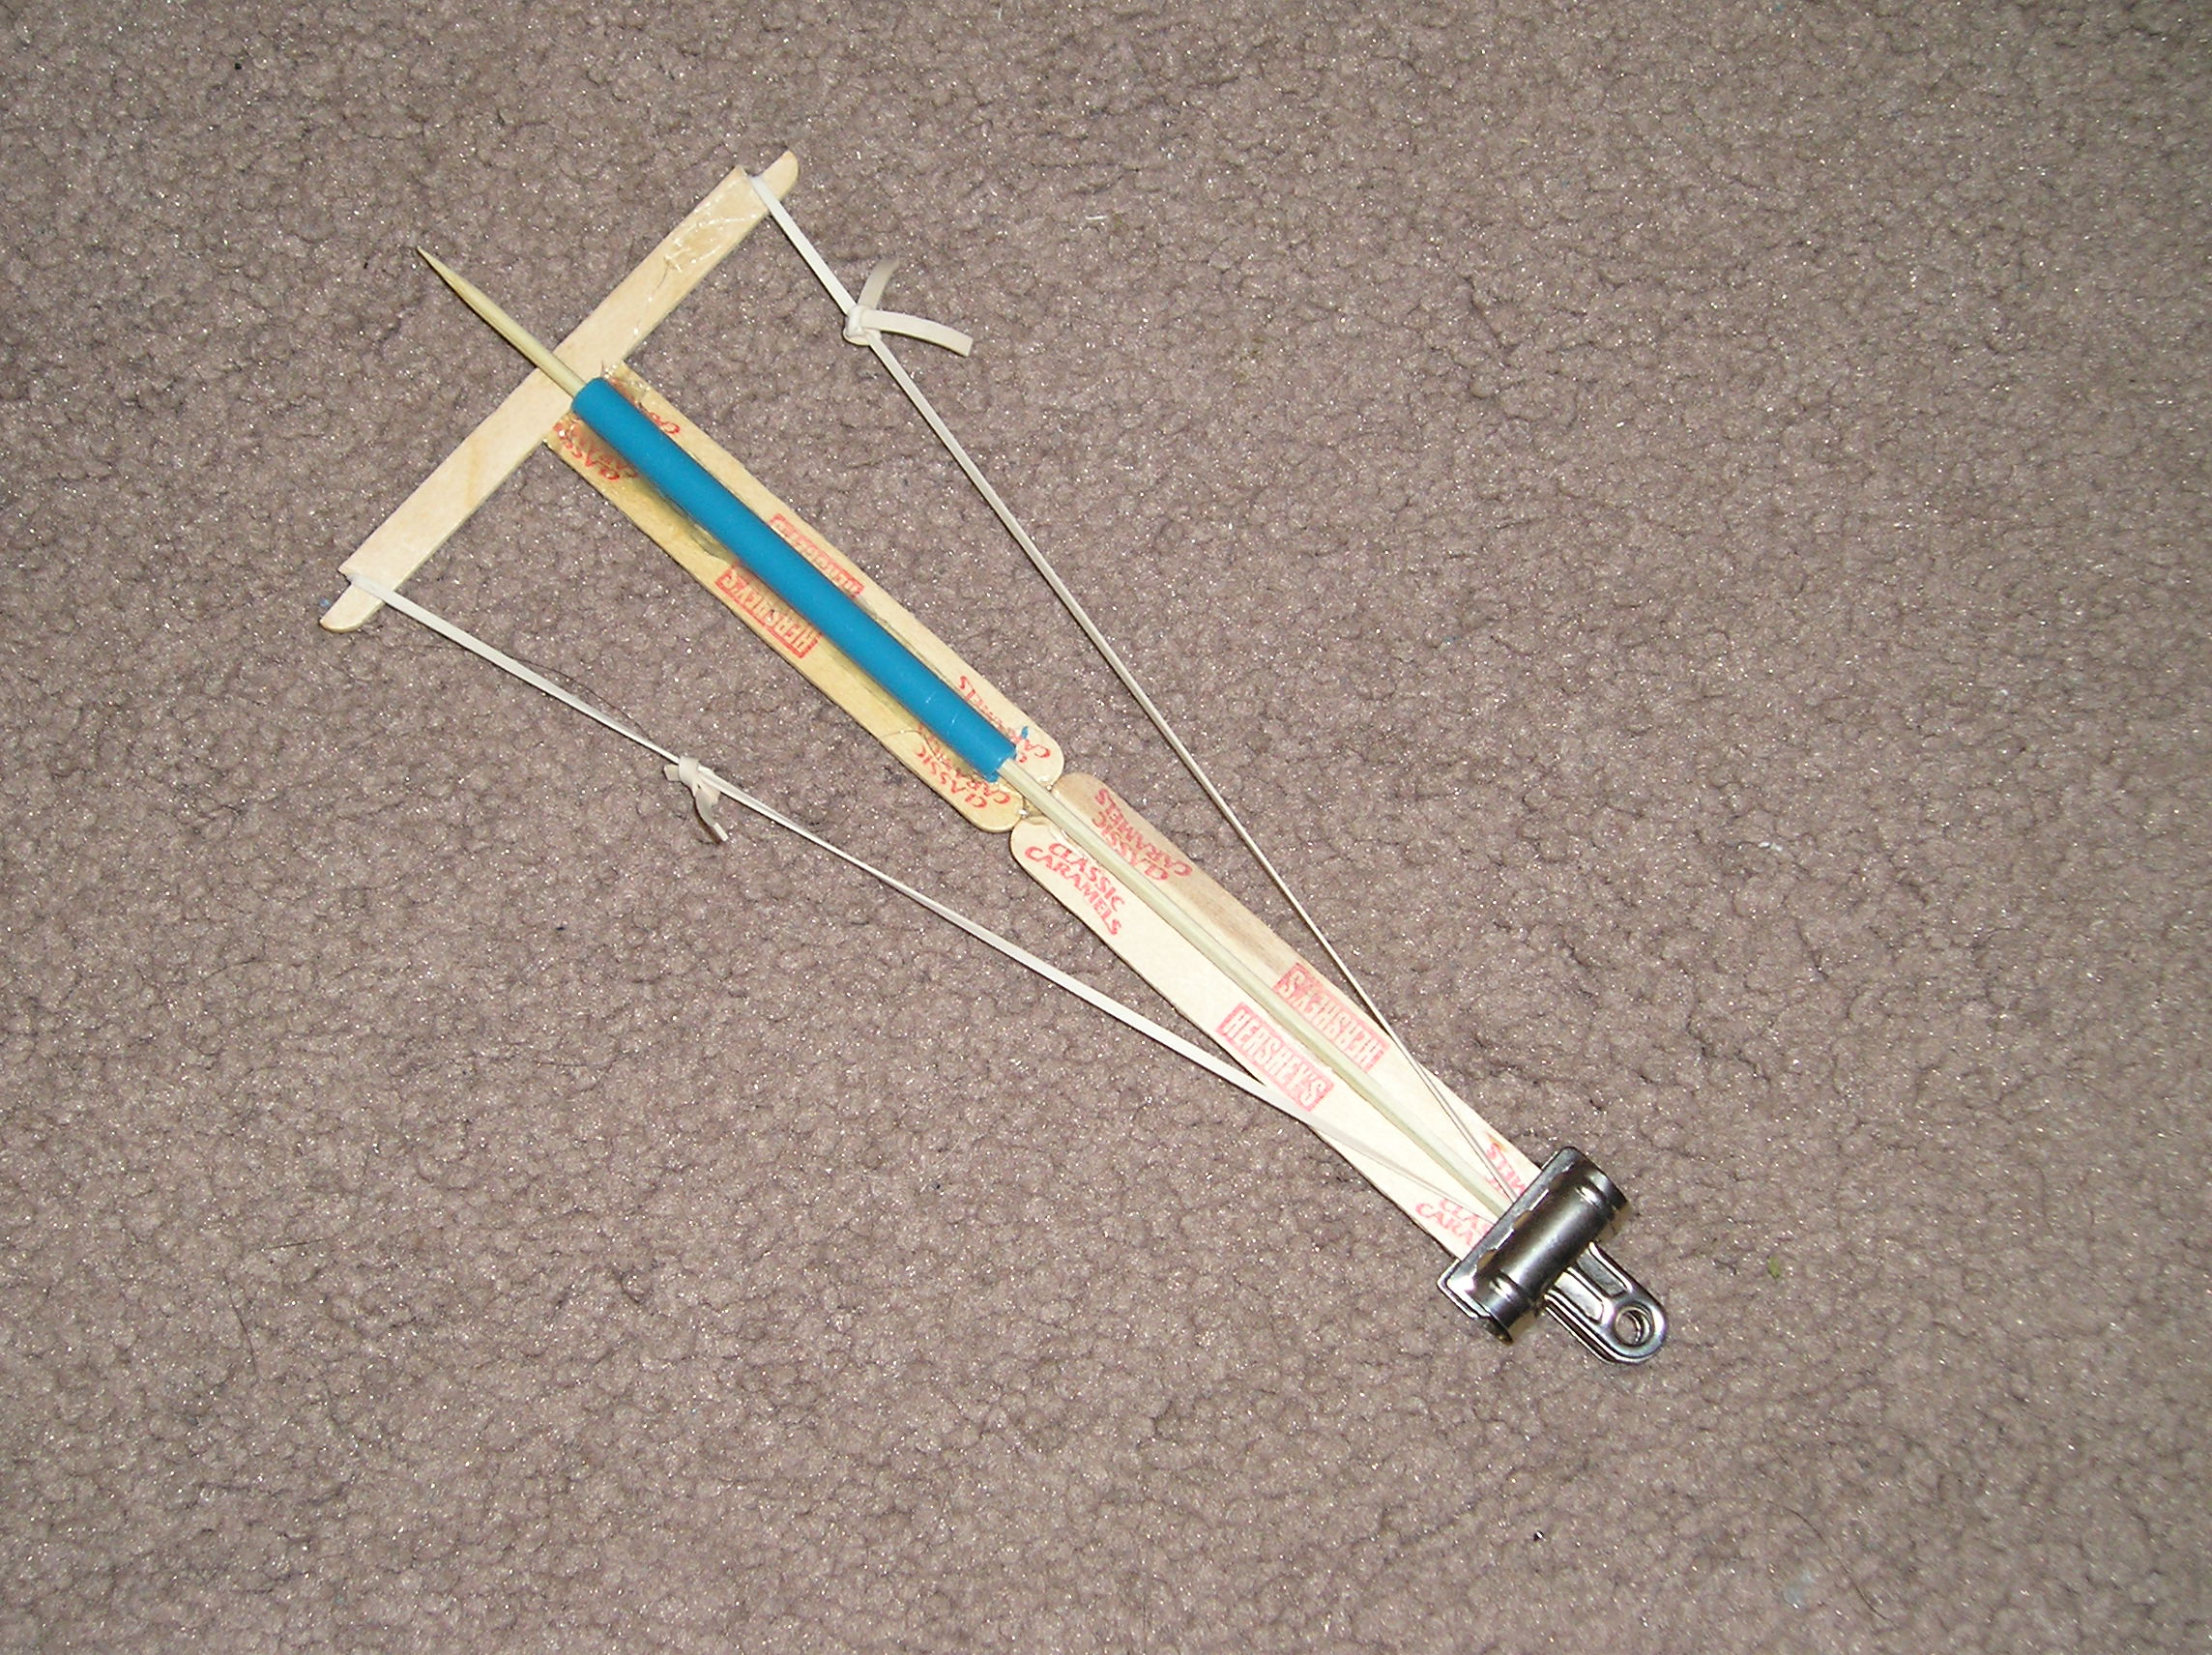 Popsicle Stick Crossbow